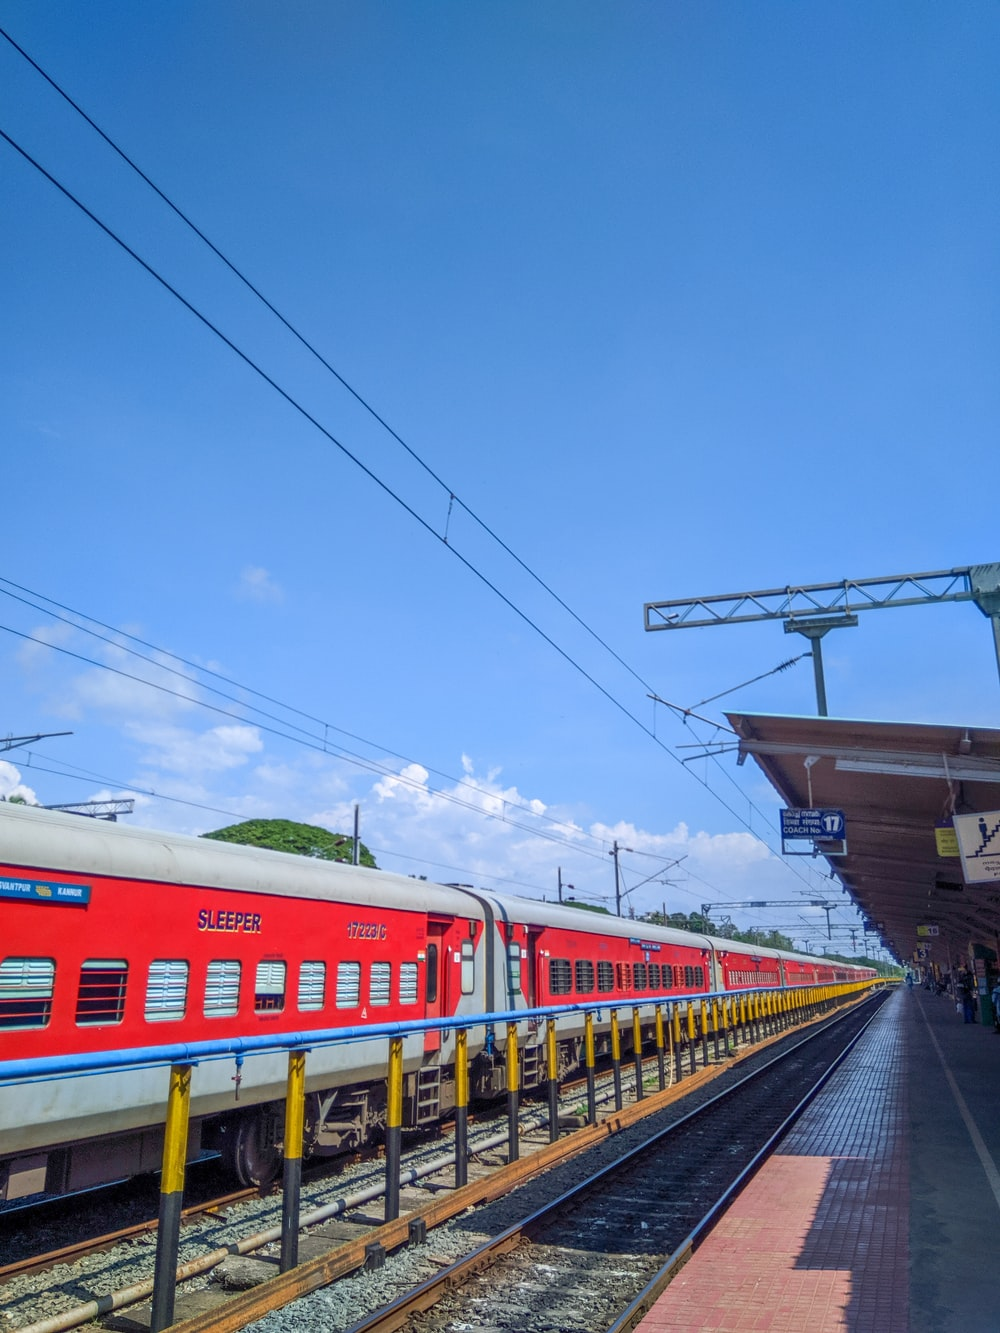 red and white train under blue sky during daytime